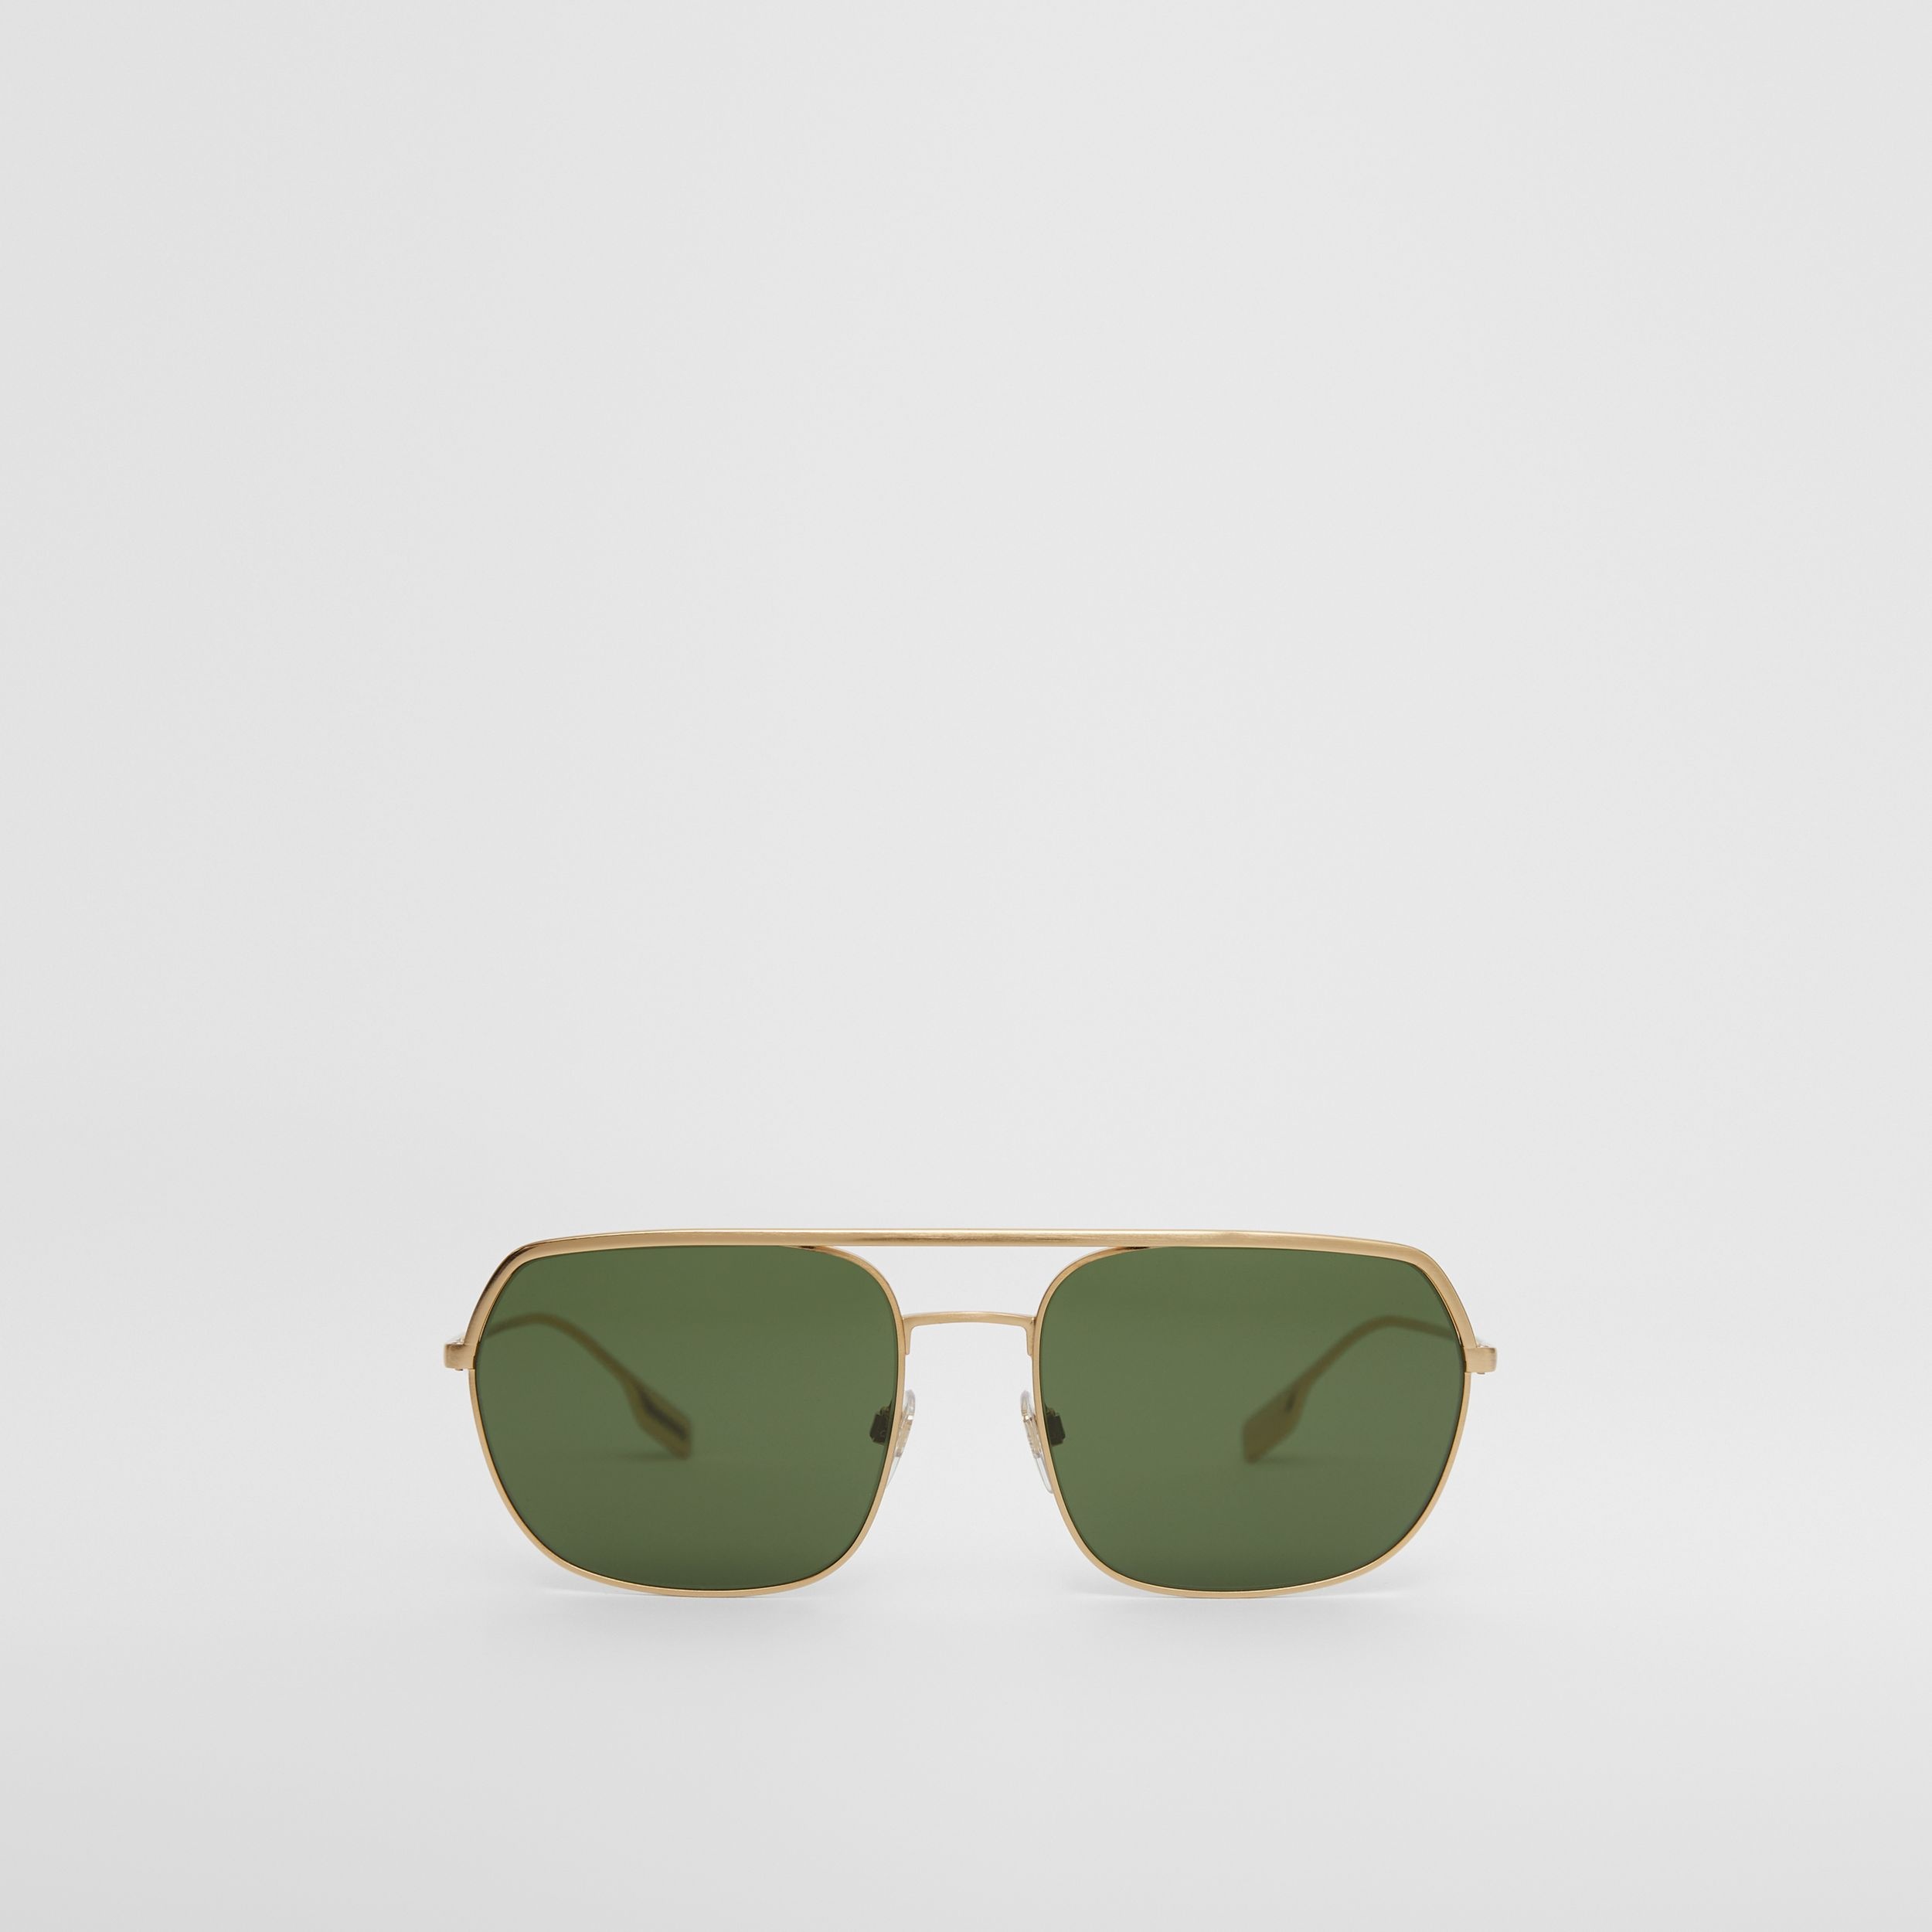 Square Pilot Sunglasses in Vintage Brushed Gold - Men | Burberry Australia - 1